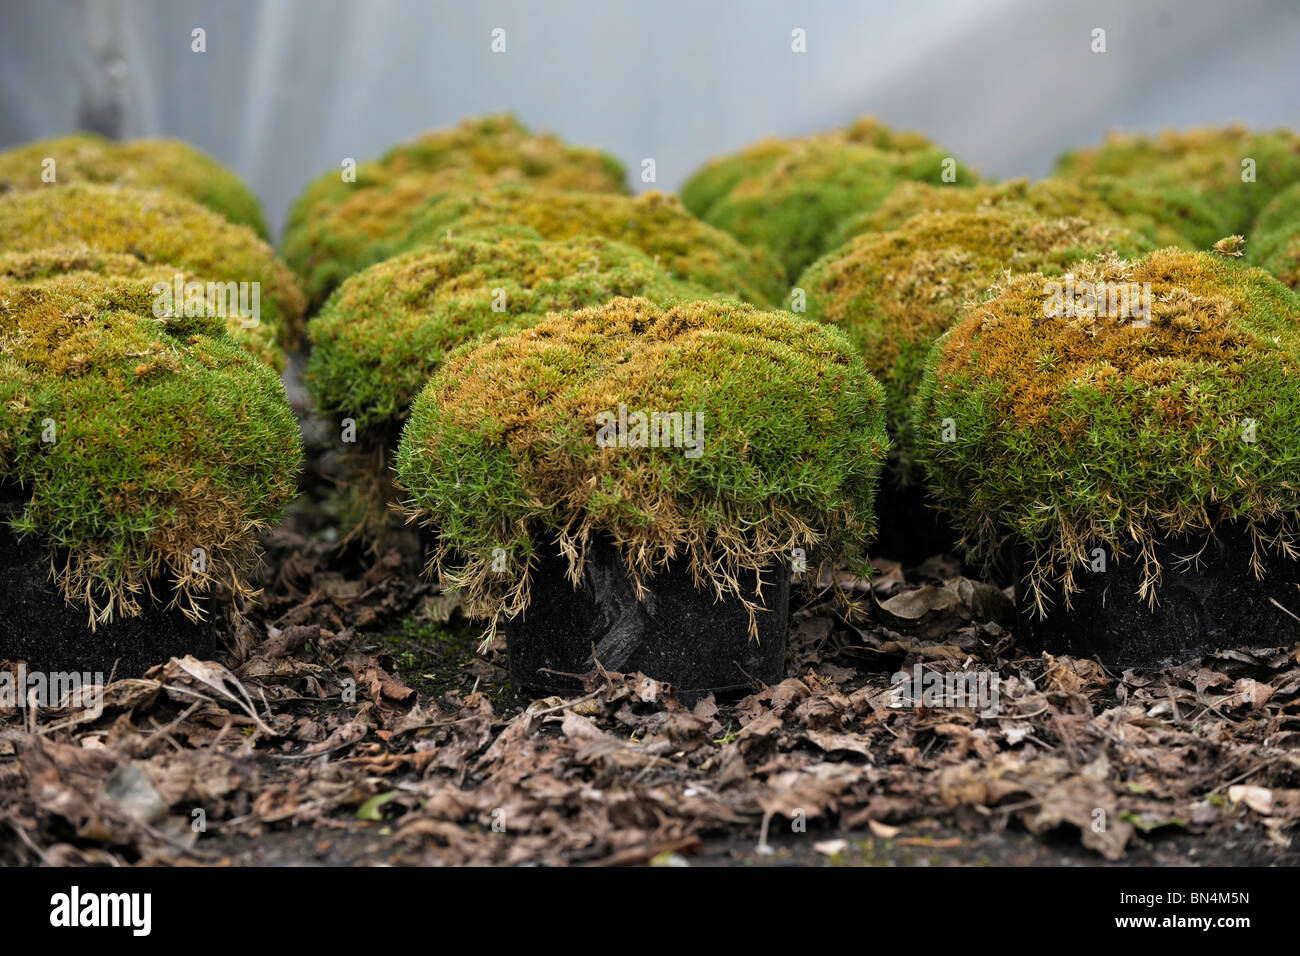 Moss Growing In Containers Stock Photo 30221793 Alamy